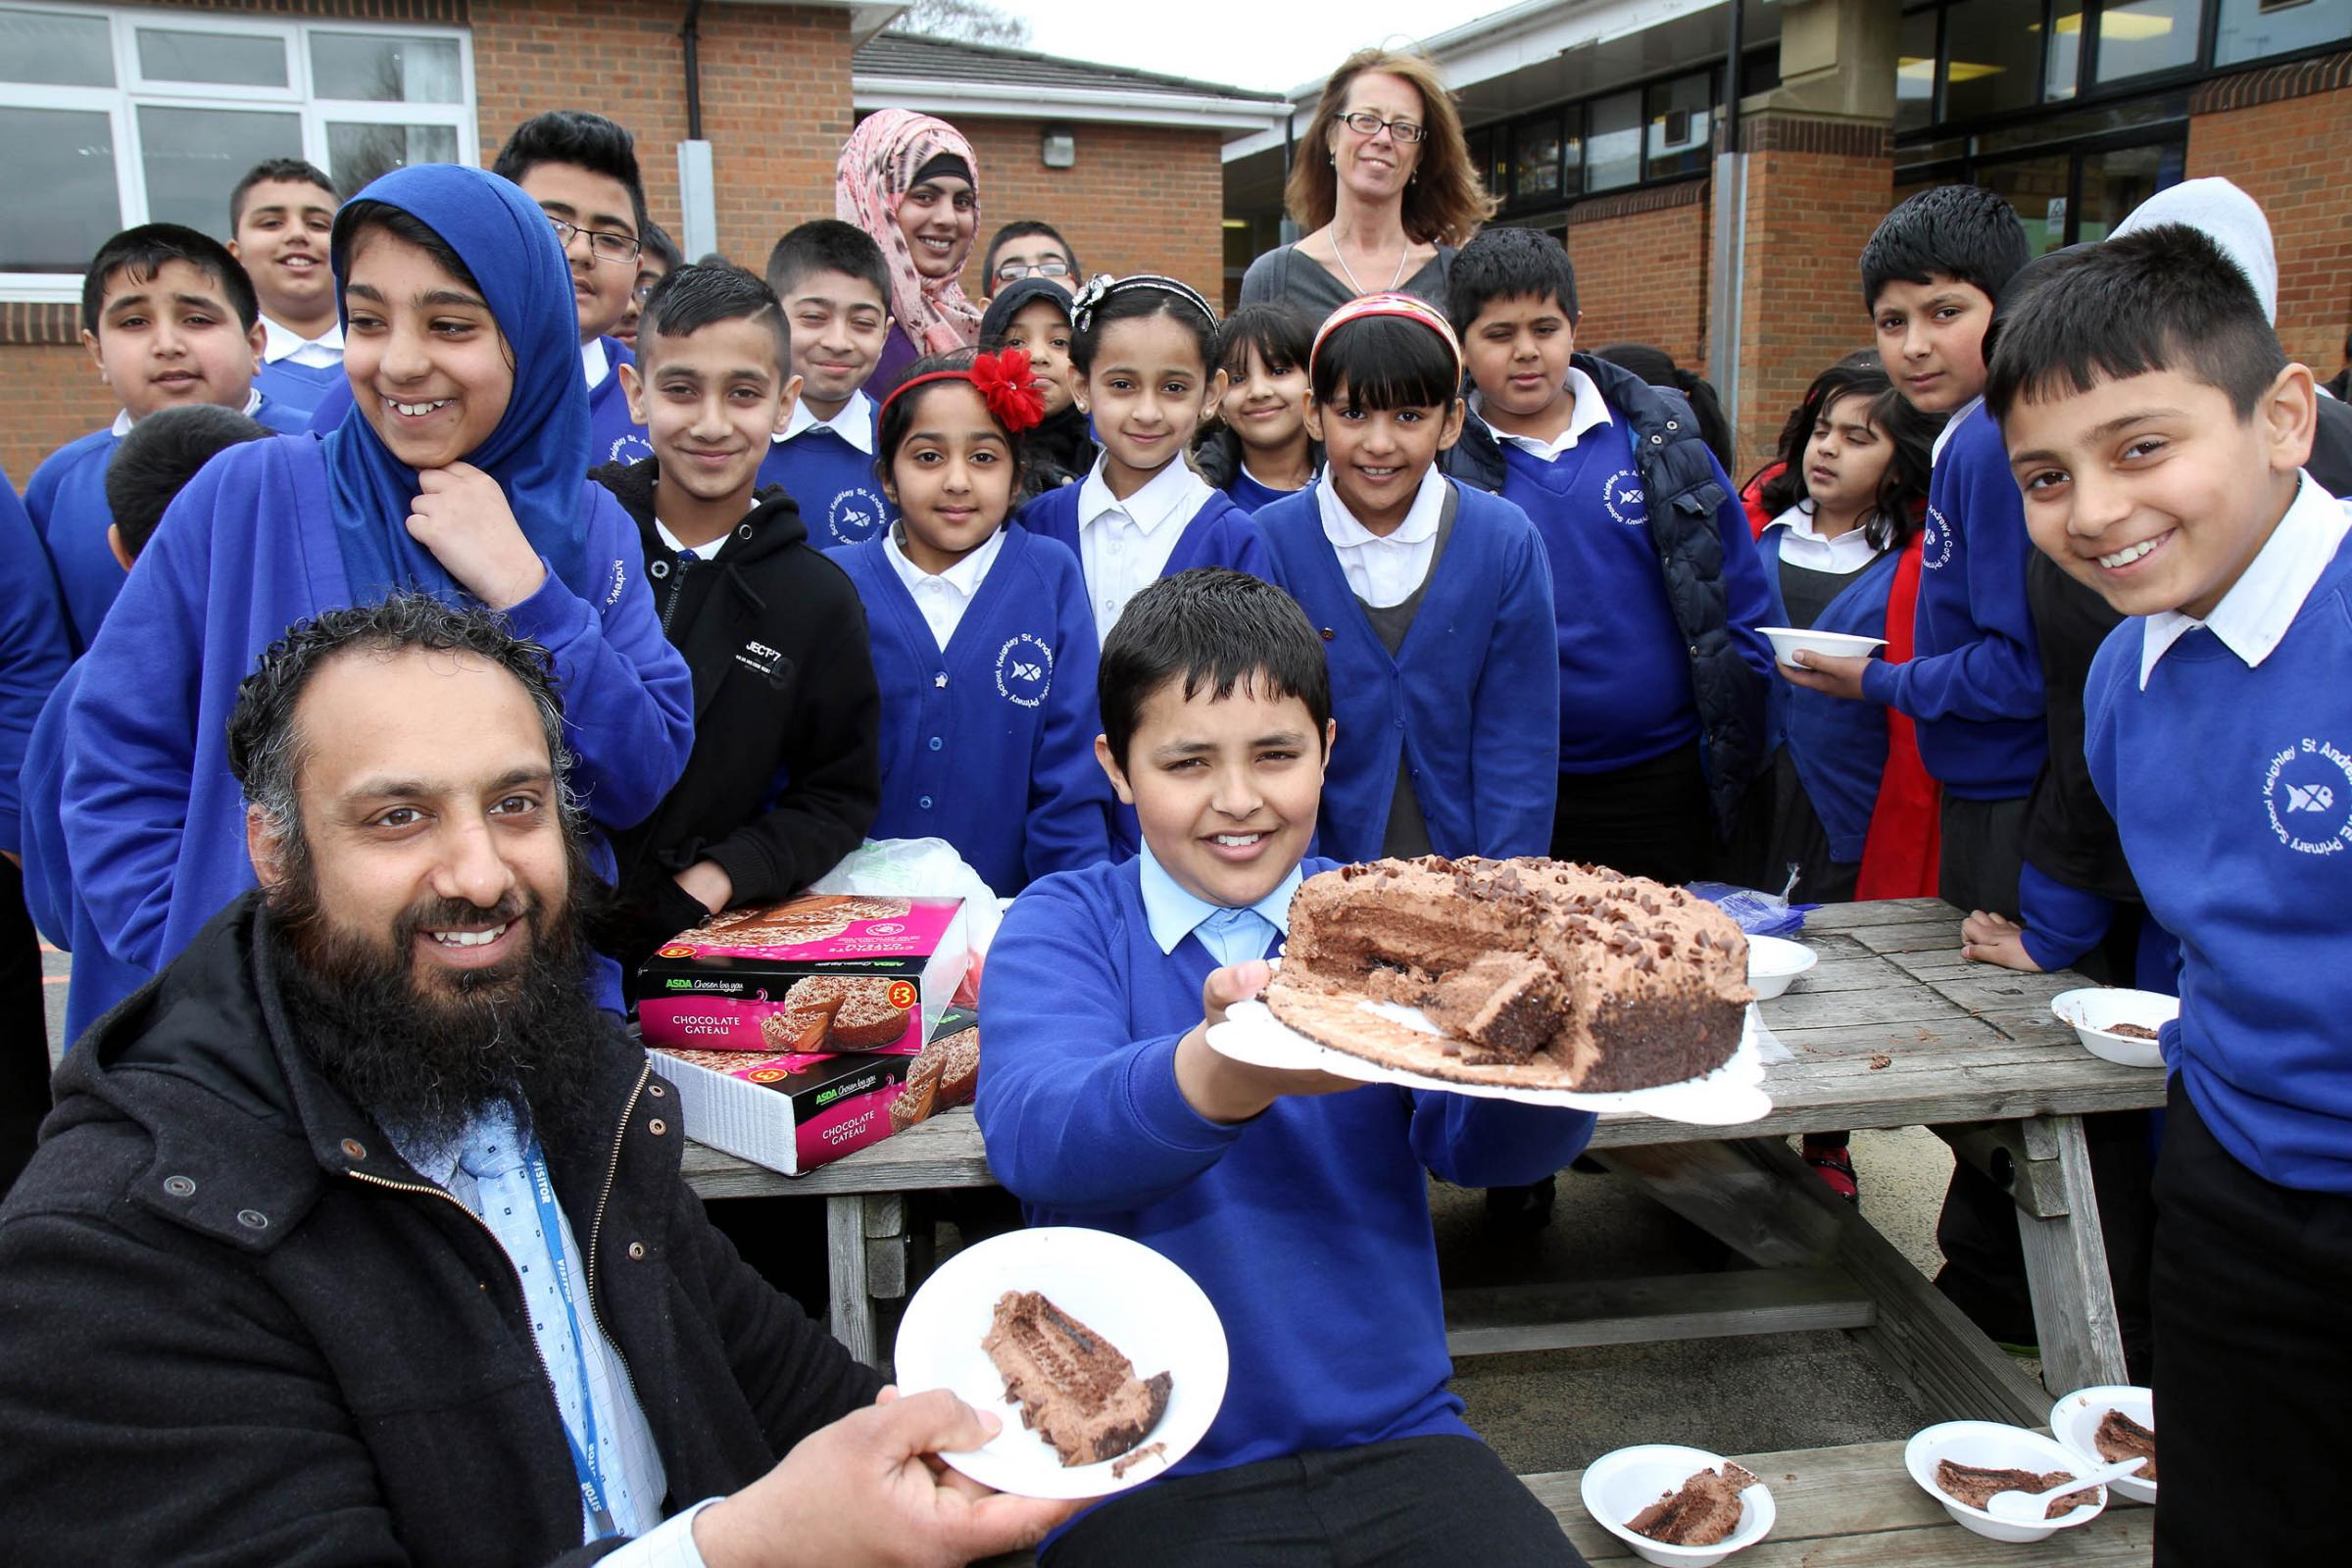 Ibrahim Ahmed, 11, centre, is joined by his uncle, town councillor Amjid Ahmed, fellow pupils and staff during the cake sale at St Andrew's Primary School